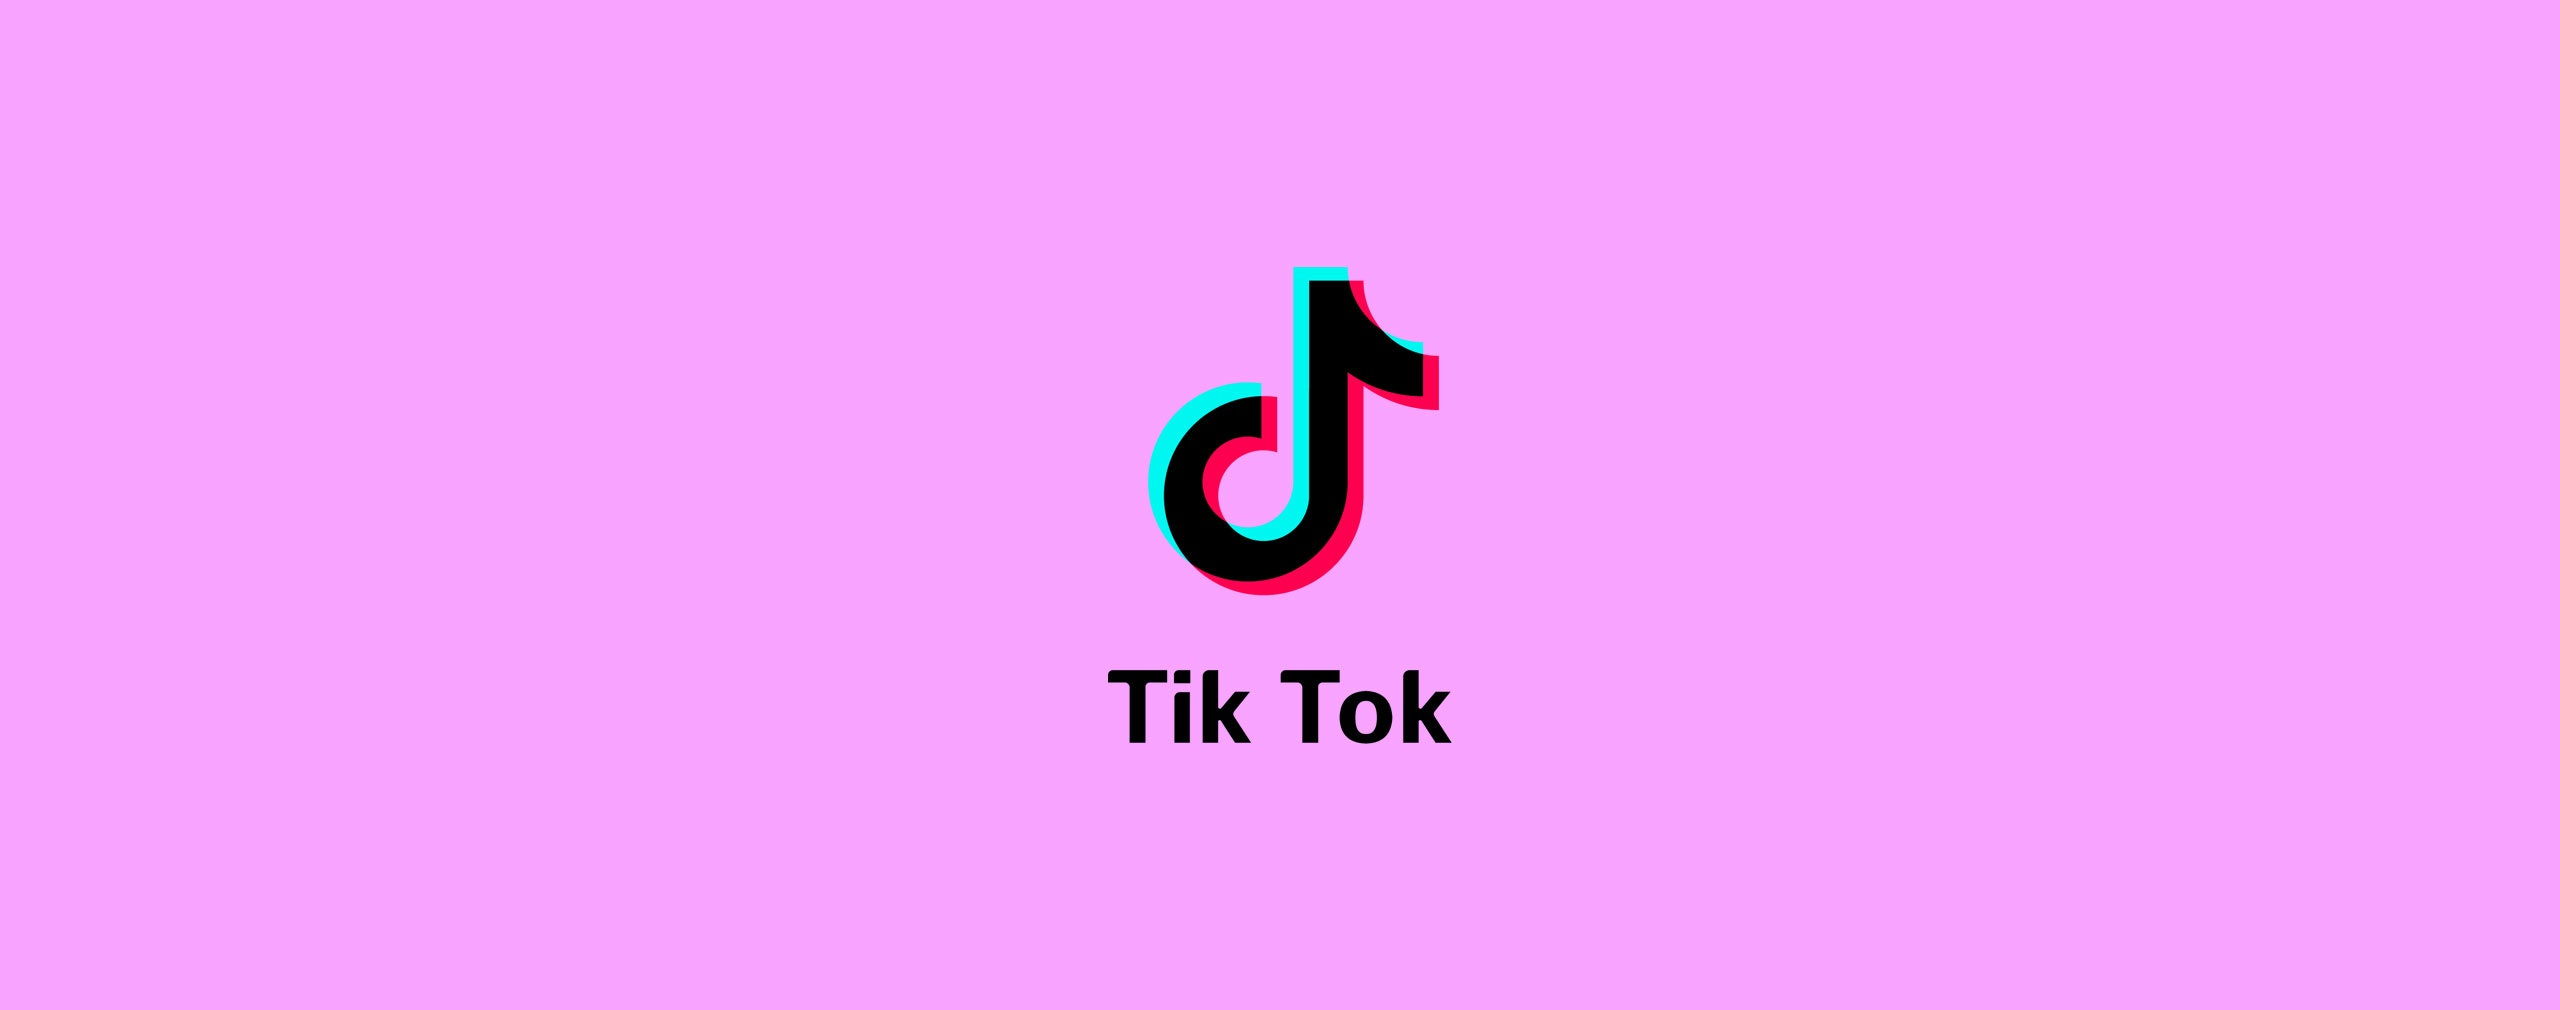 Tiktok All The Best Memes Challenges And Dances And How To Find Them